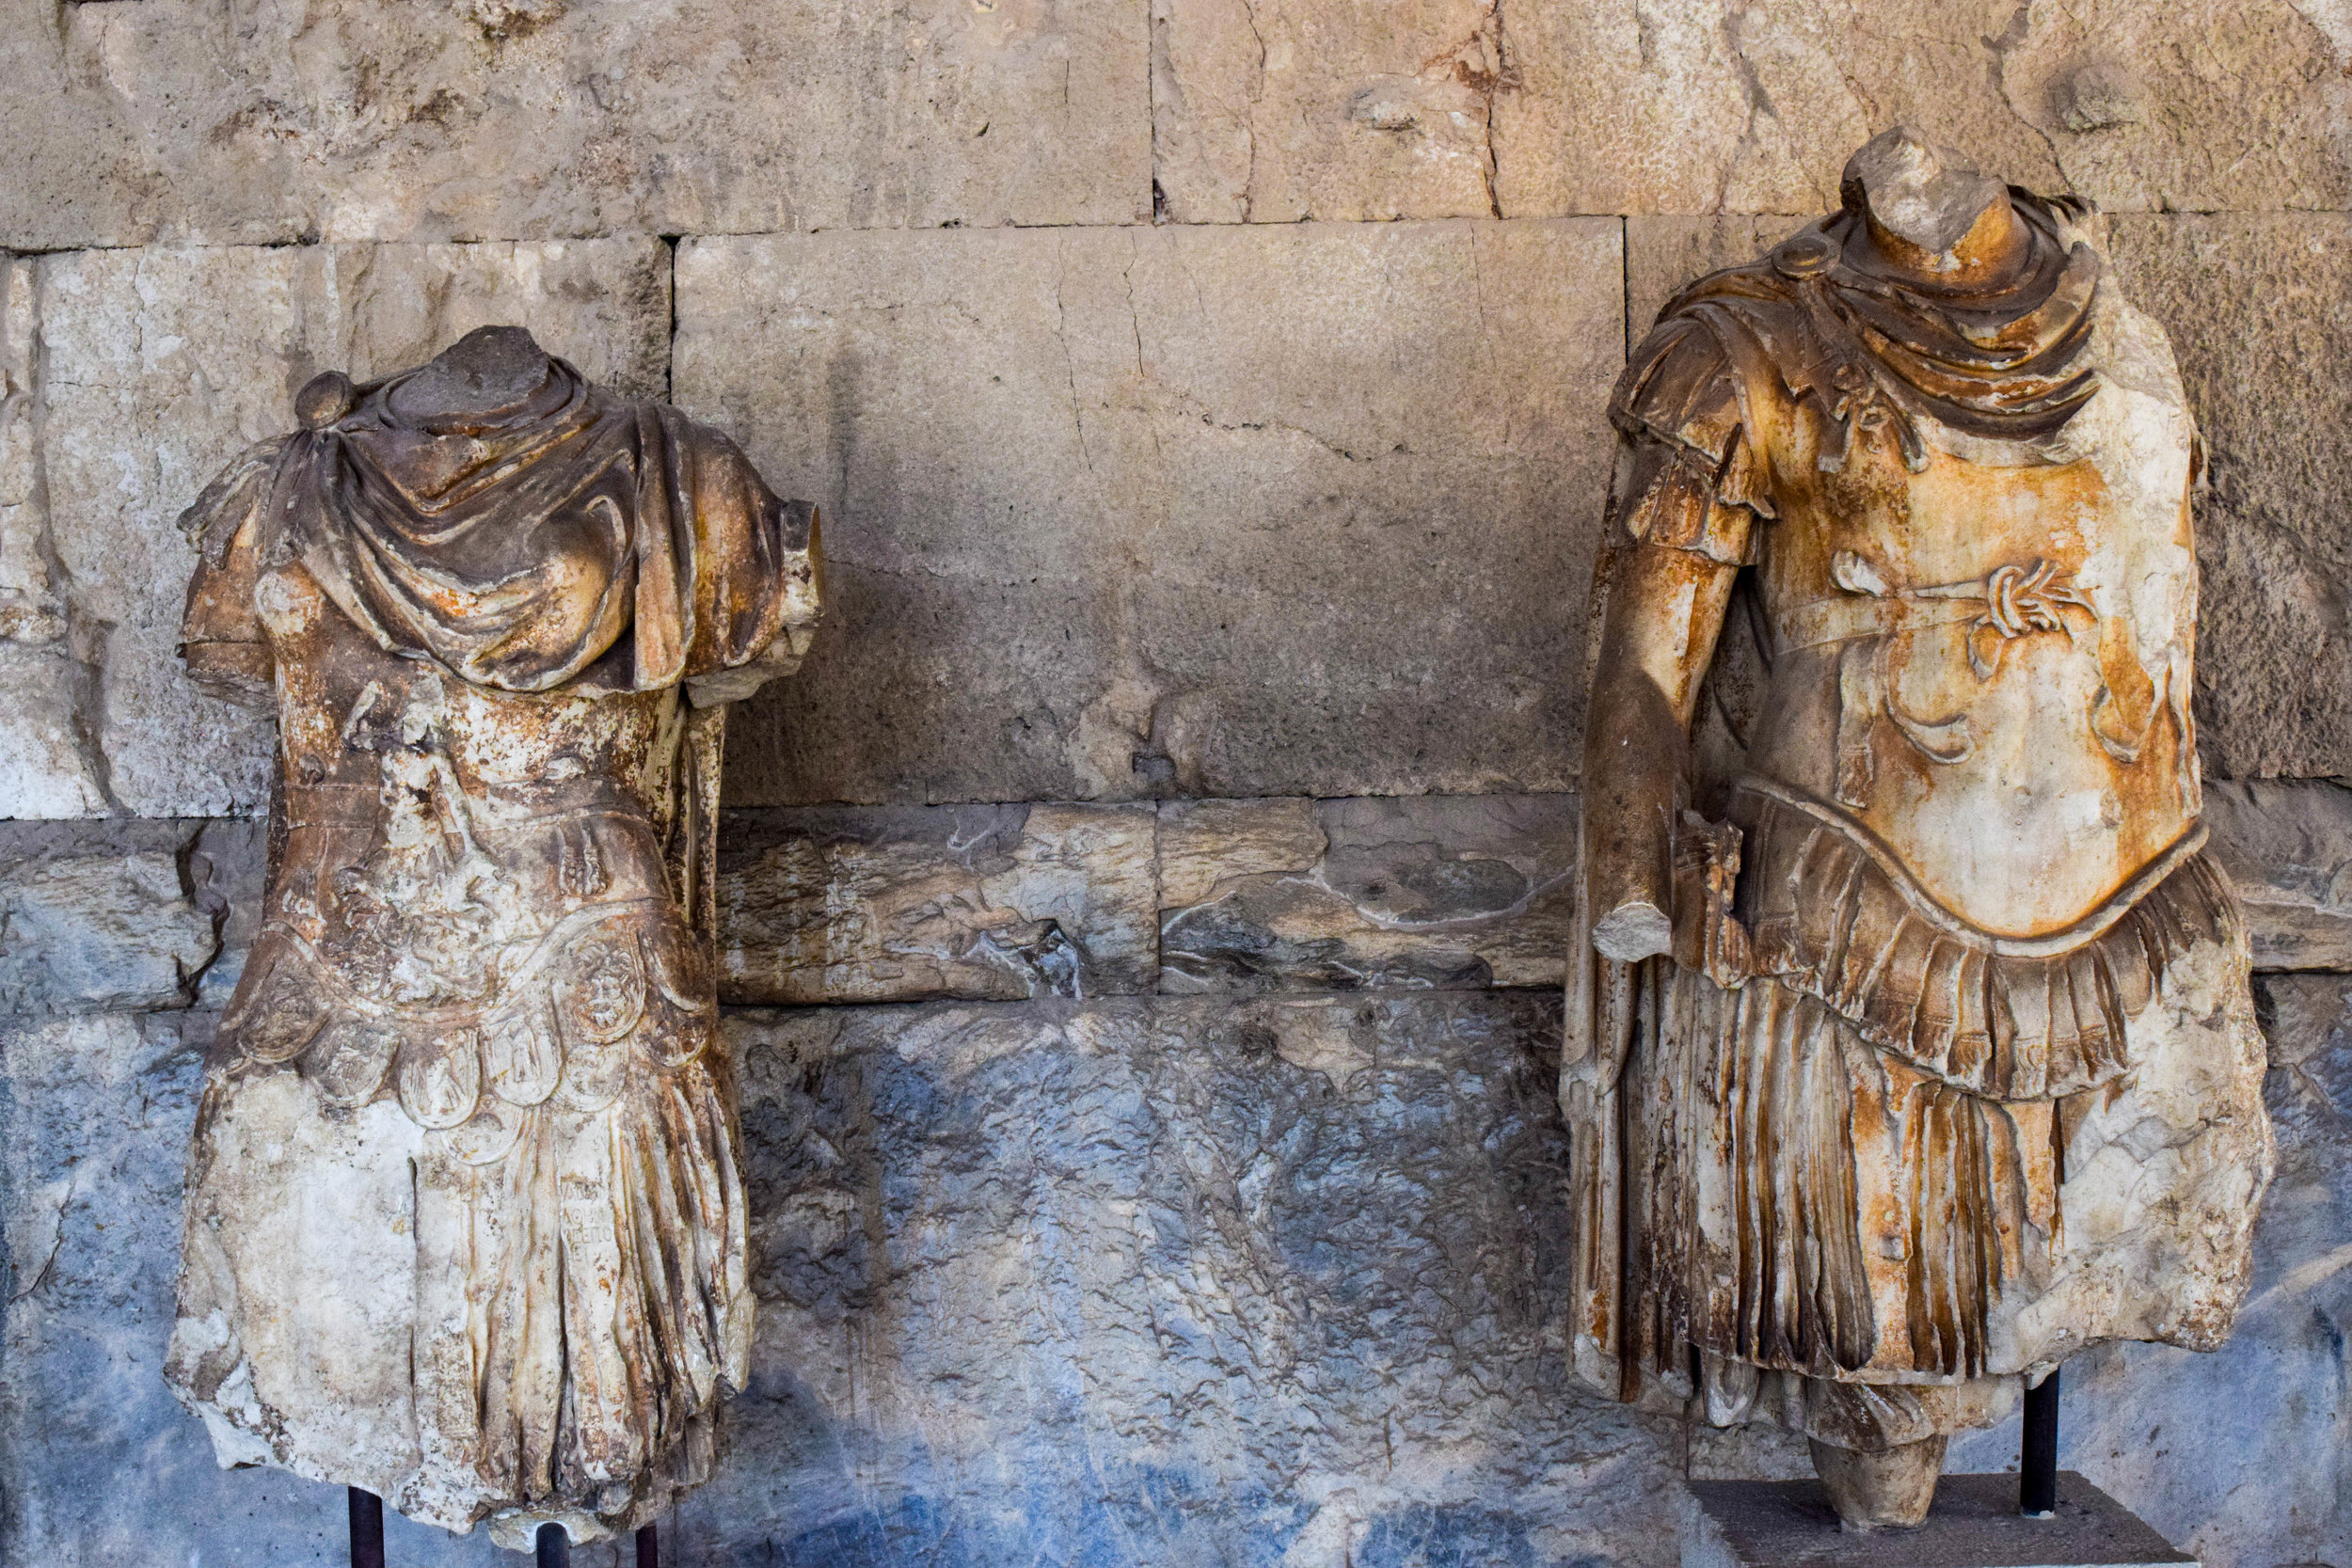 Ancient, weathered statues on display in the Agora museum.